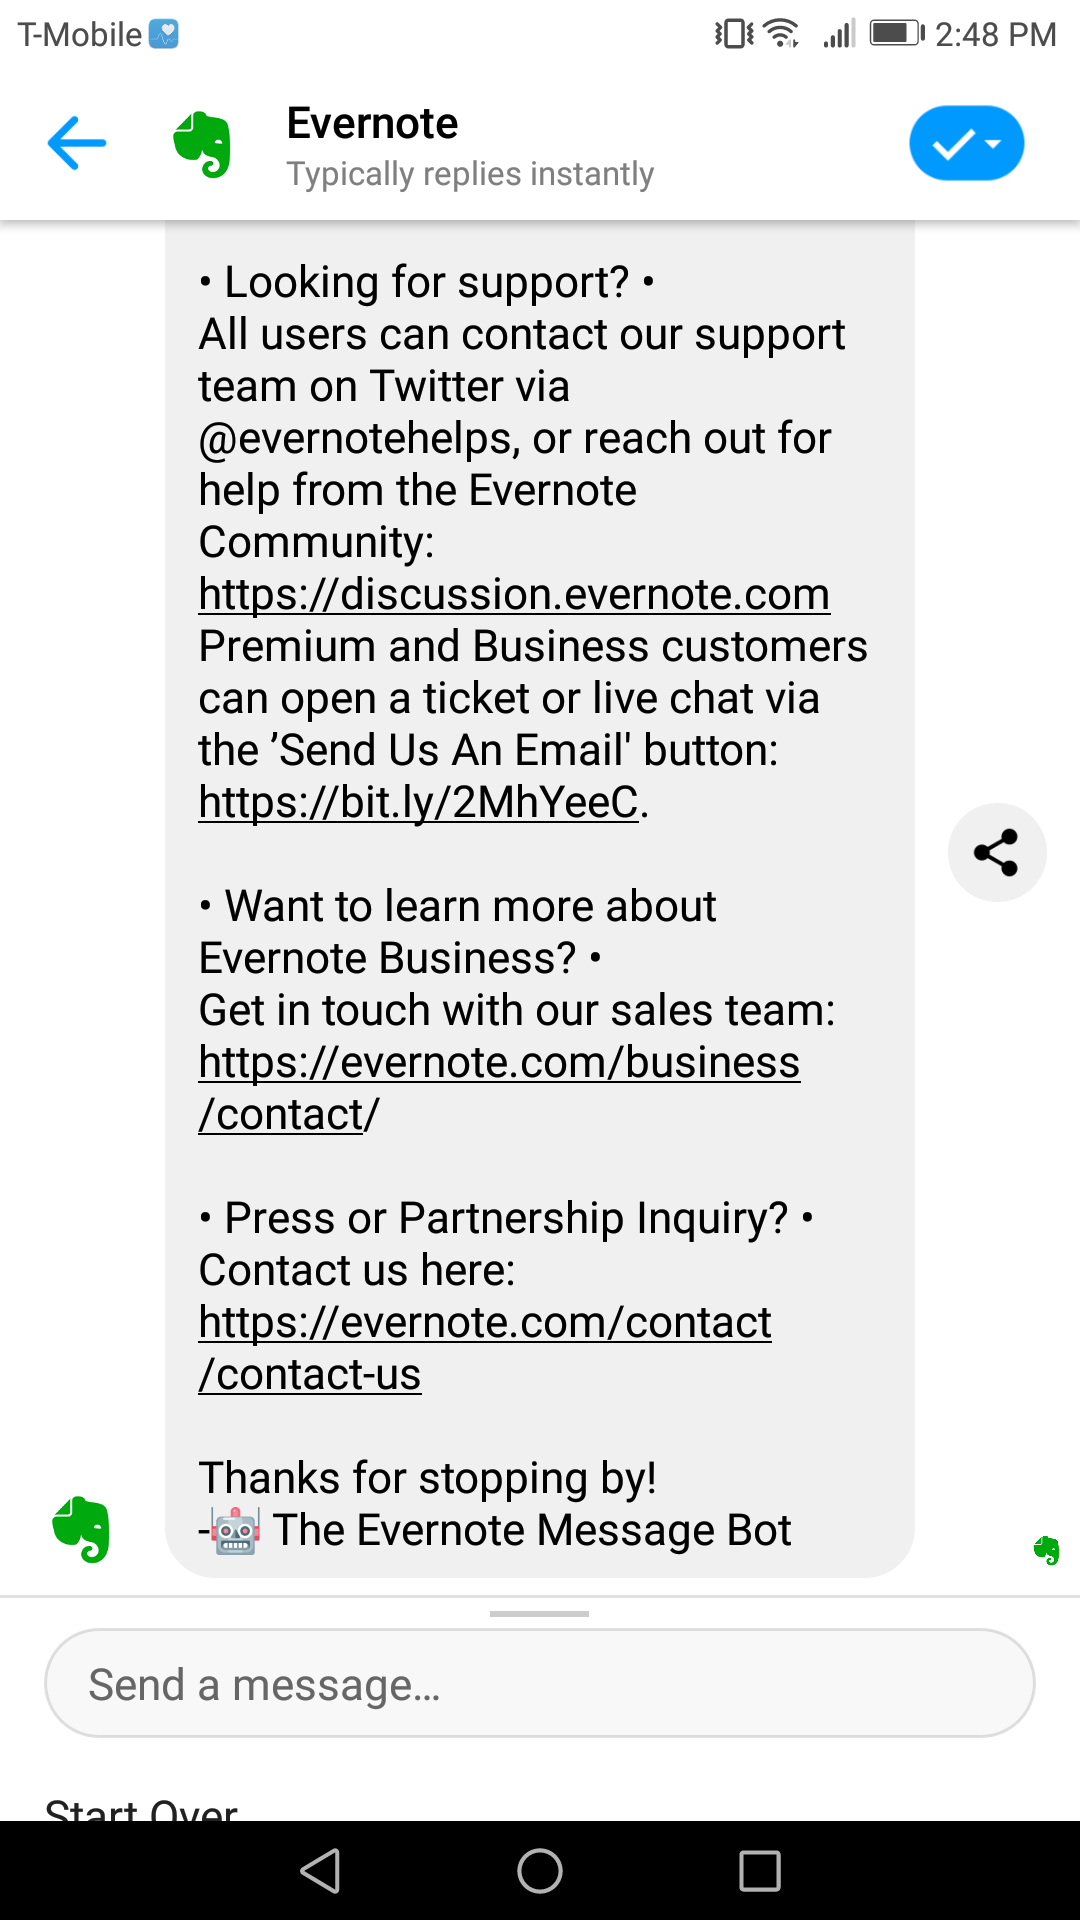 Evernote is different from our other chatbot marketing examples in that it's a single-message bot that encourages users to go off-site